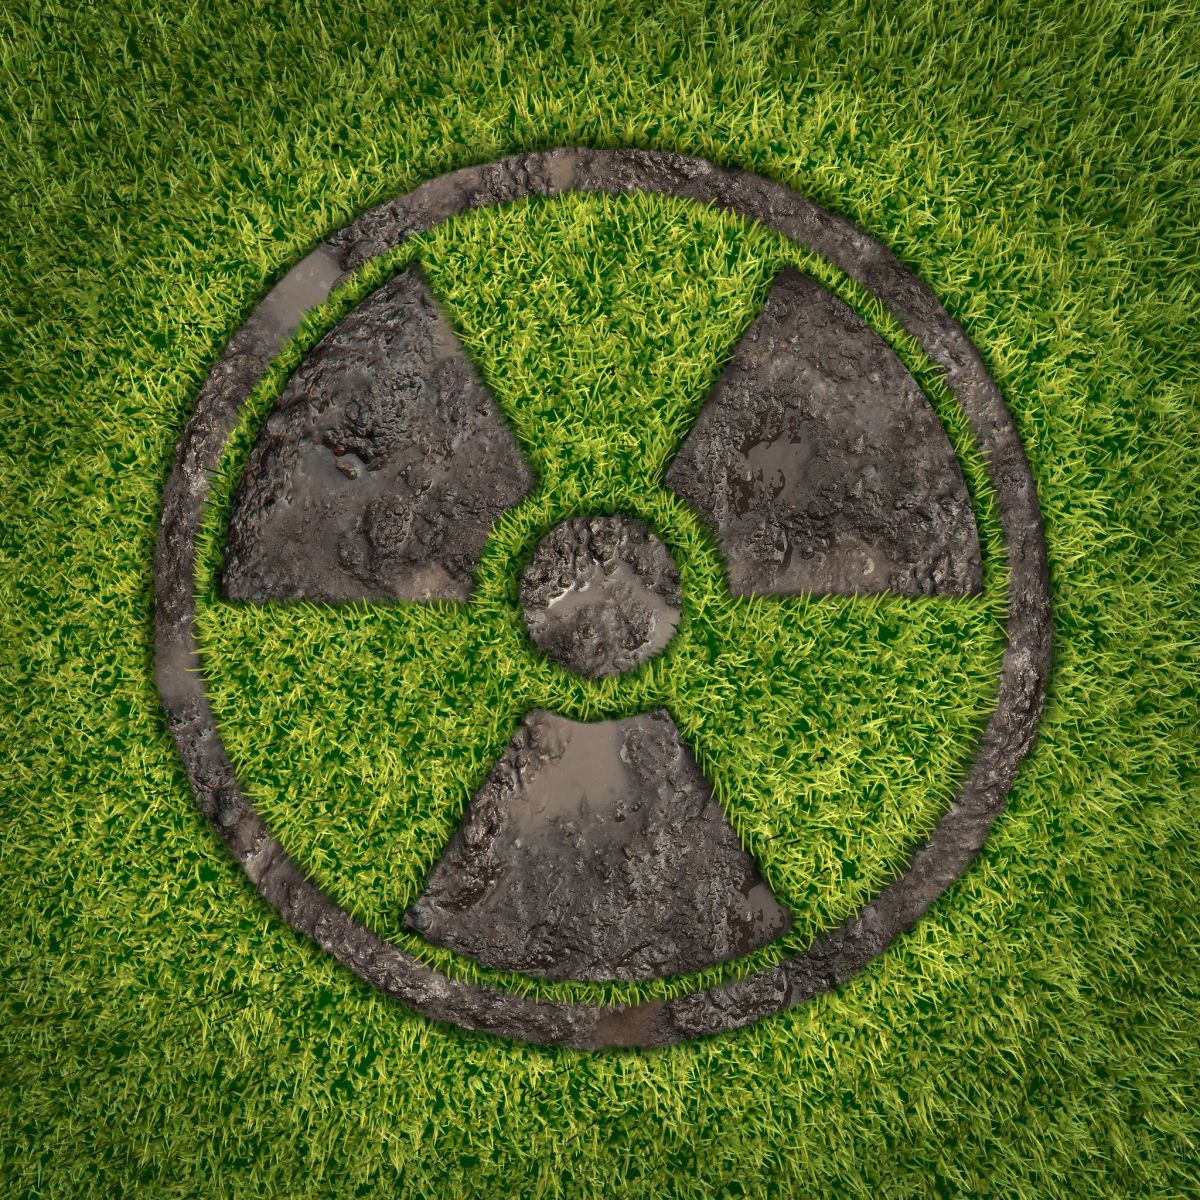 Tracking & Mitigating Radiation Poisoning from the Inside Out